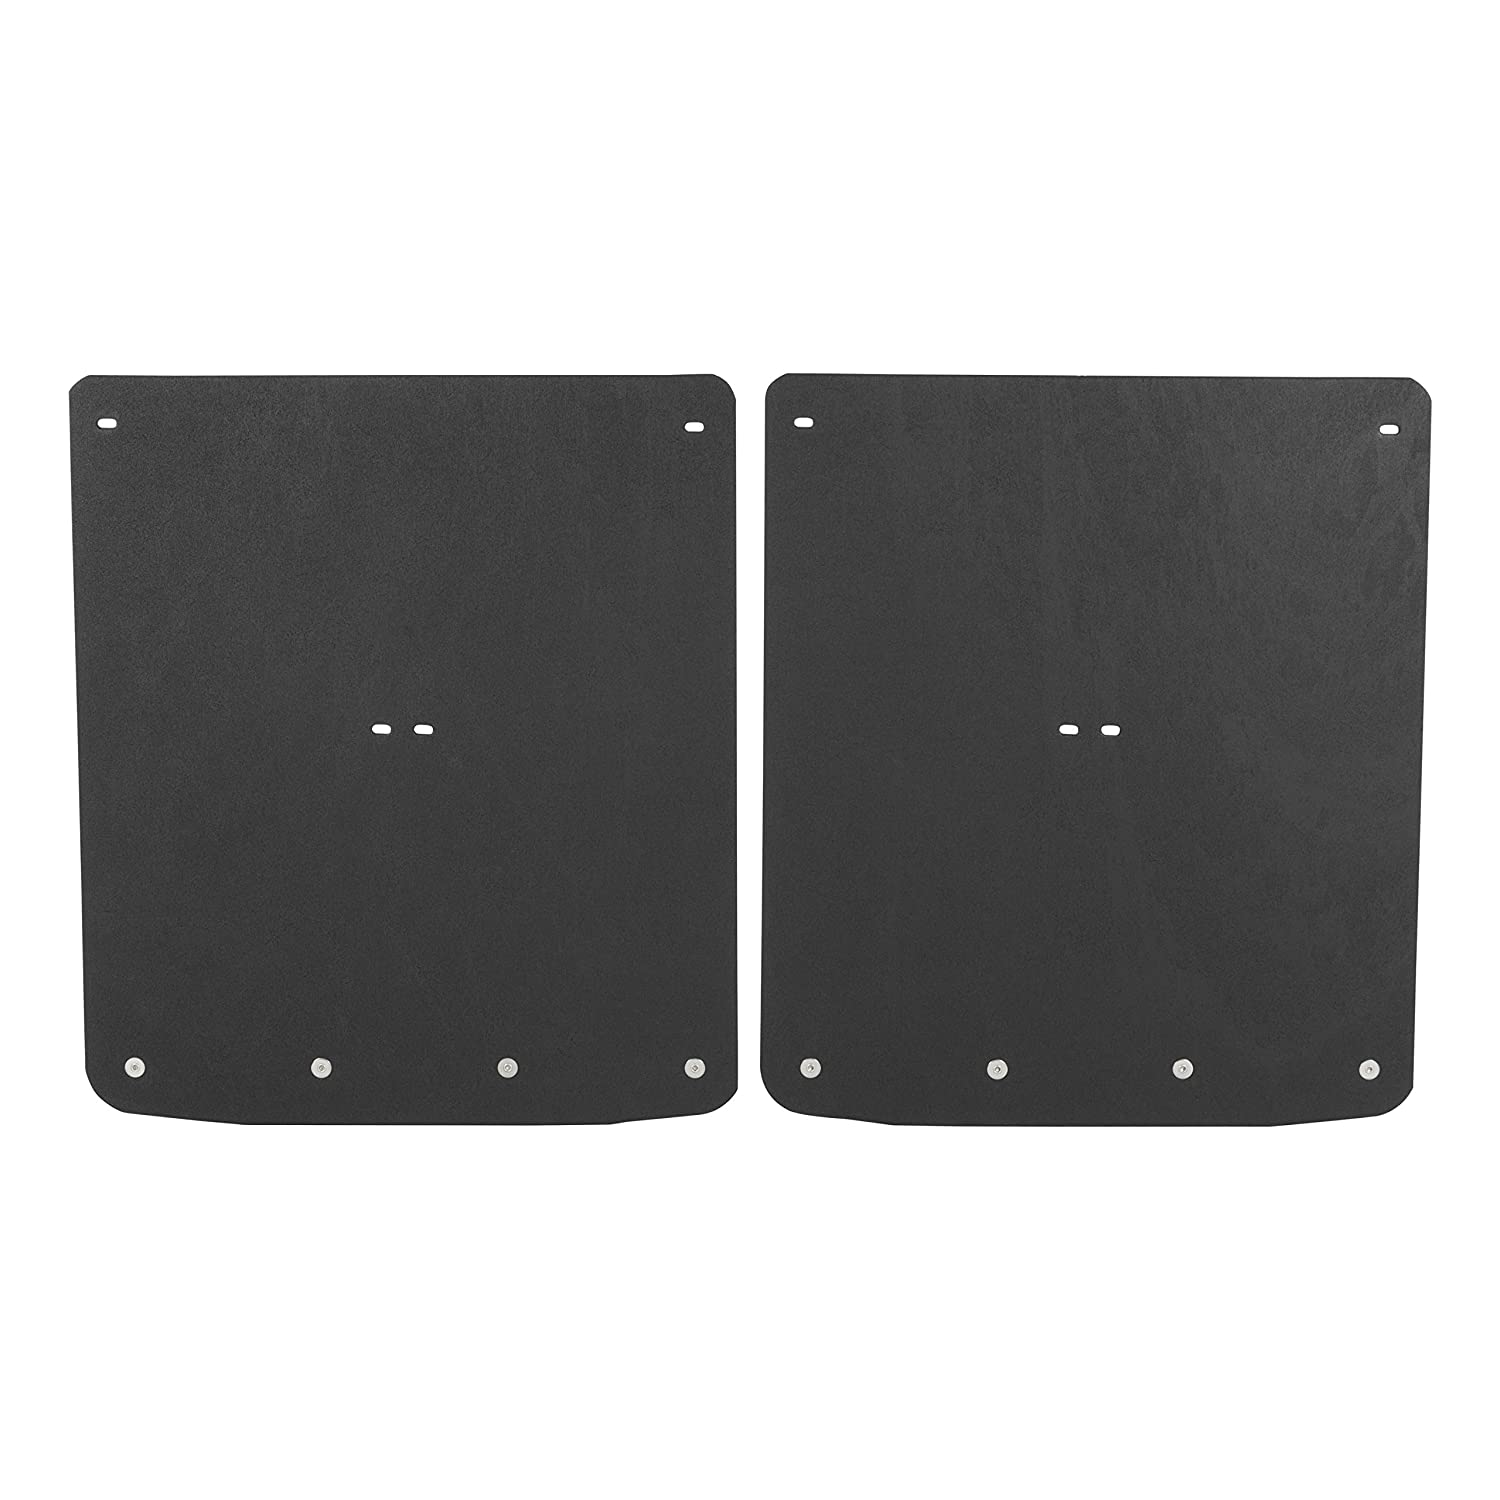 GMC Sierra 3500 HD LUVERNE 251544 Rear Dually 20 x 23-Inch Textured Rubber Mud Guards Black 20 x 23 for Select Chevrolet Silverado